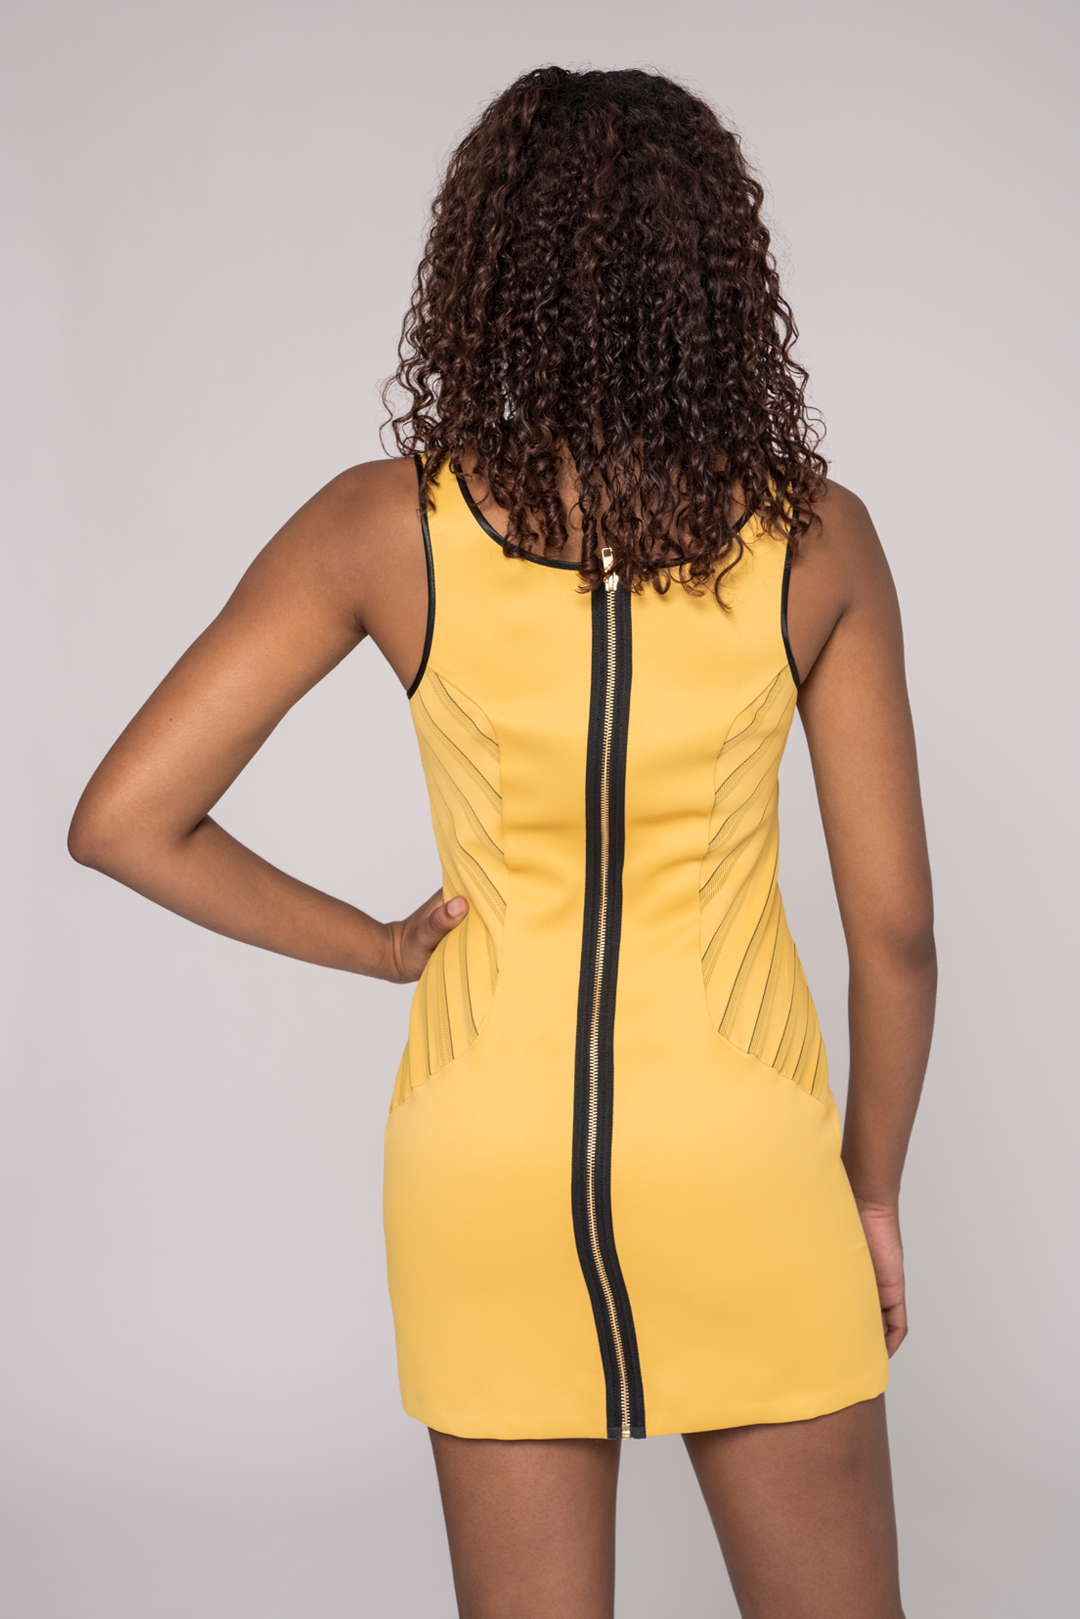 back view of a black model wearing a yellow sheath dress